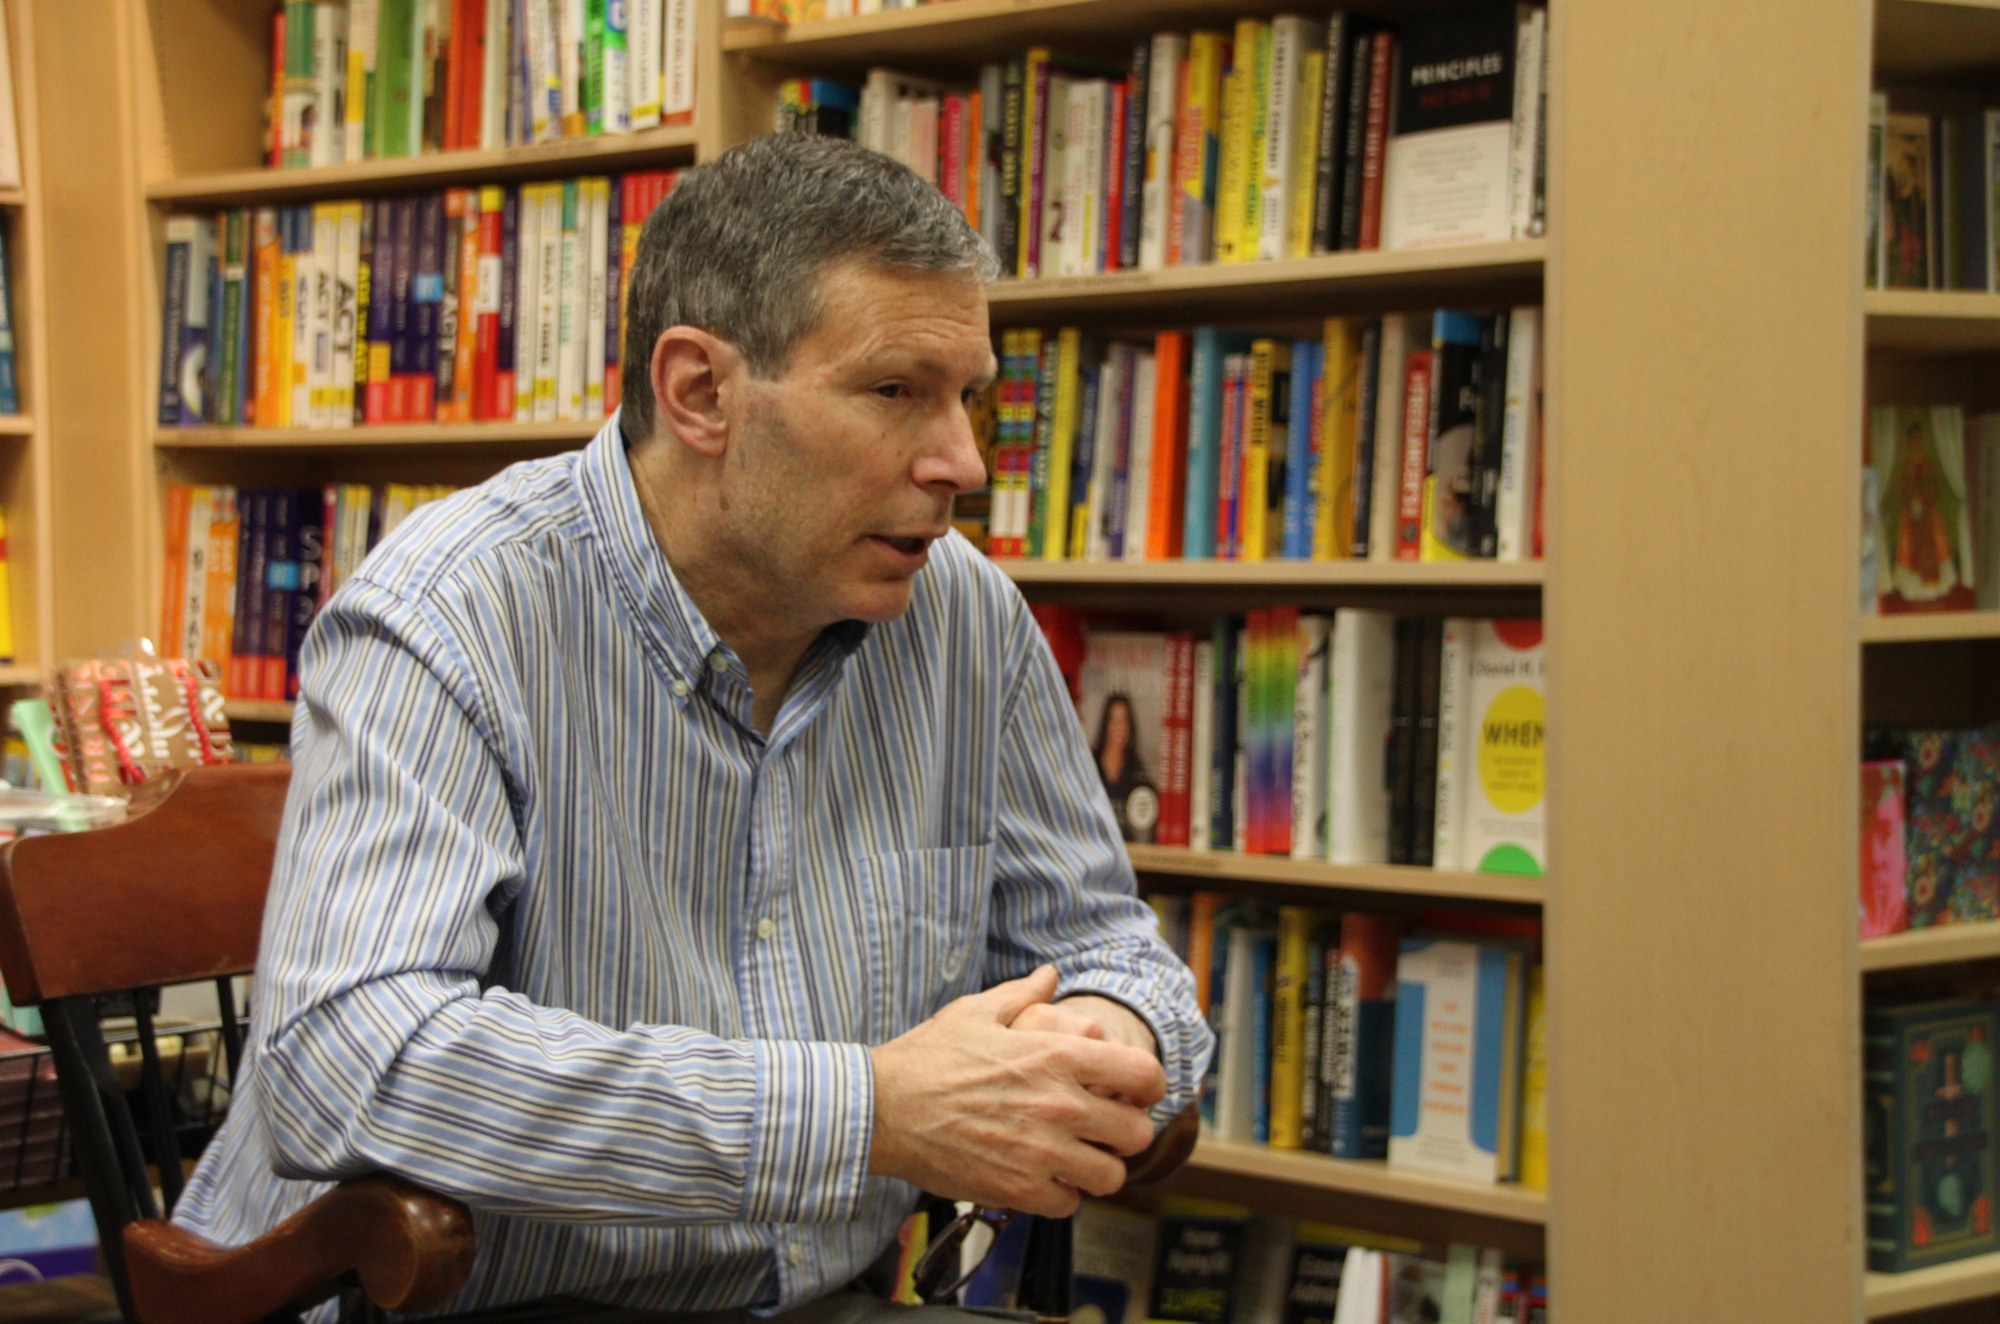 The owner of Porter Square Books offers his thoughts on the importance of independent bookstores in the age of Amazon.